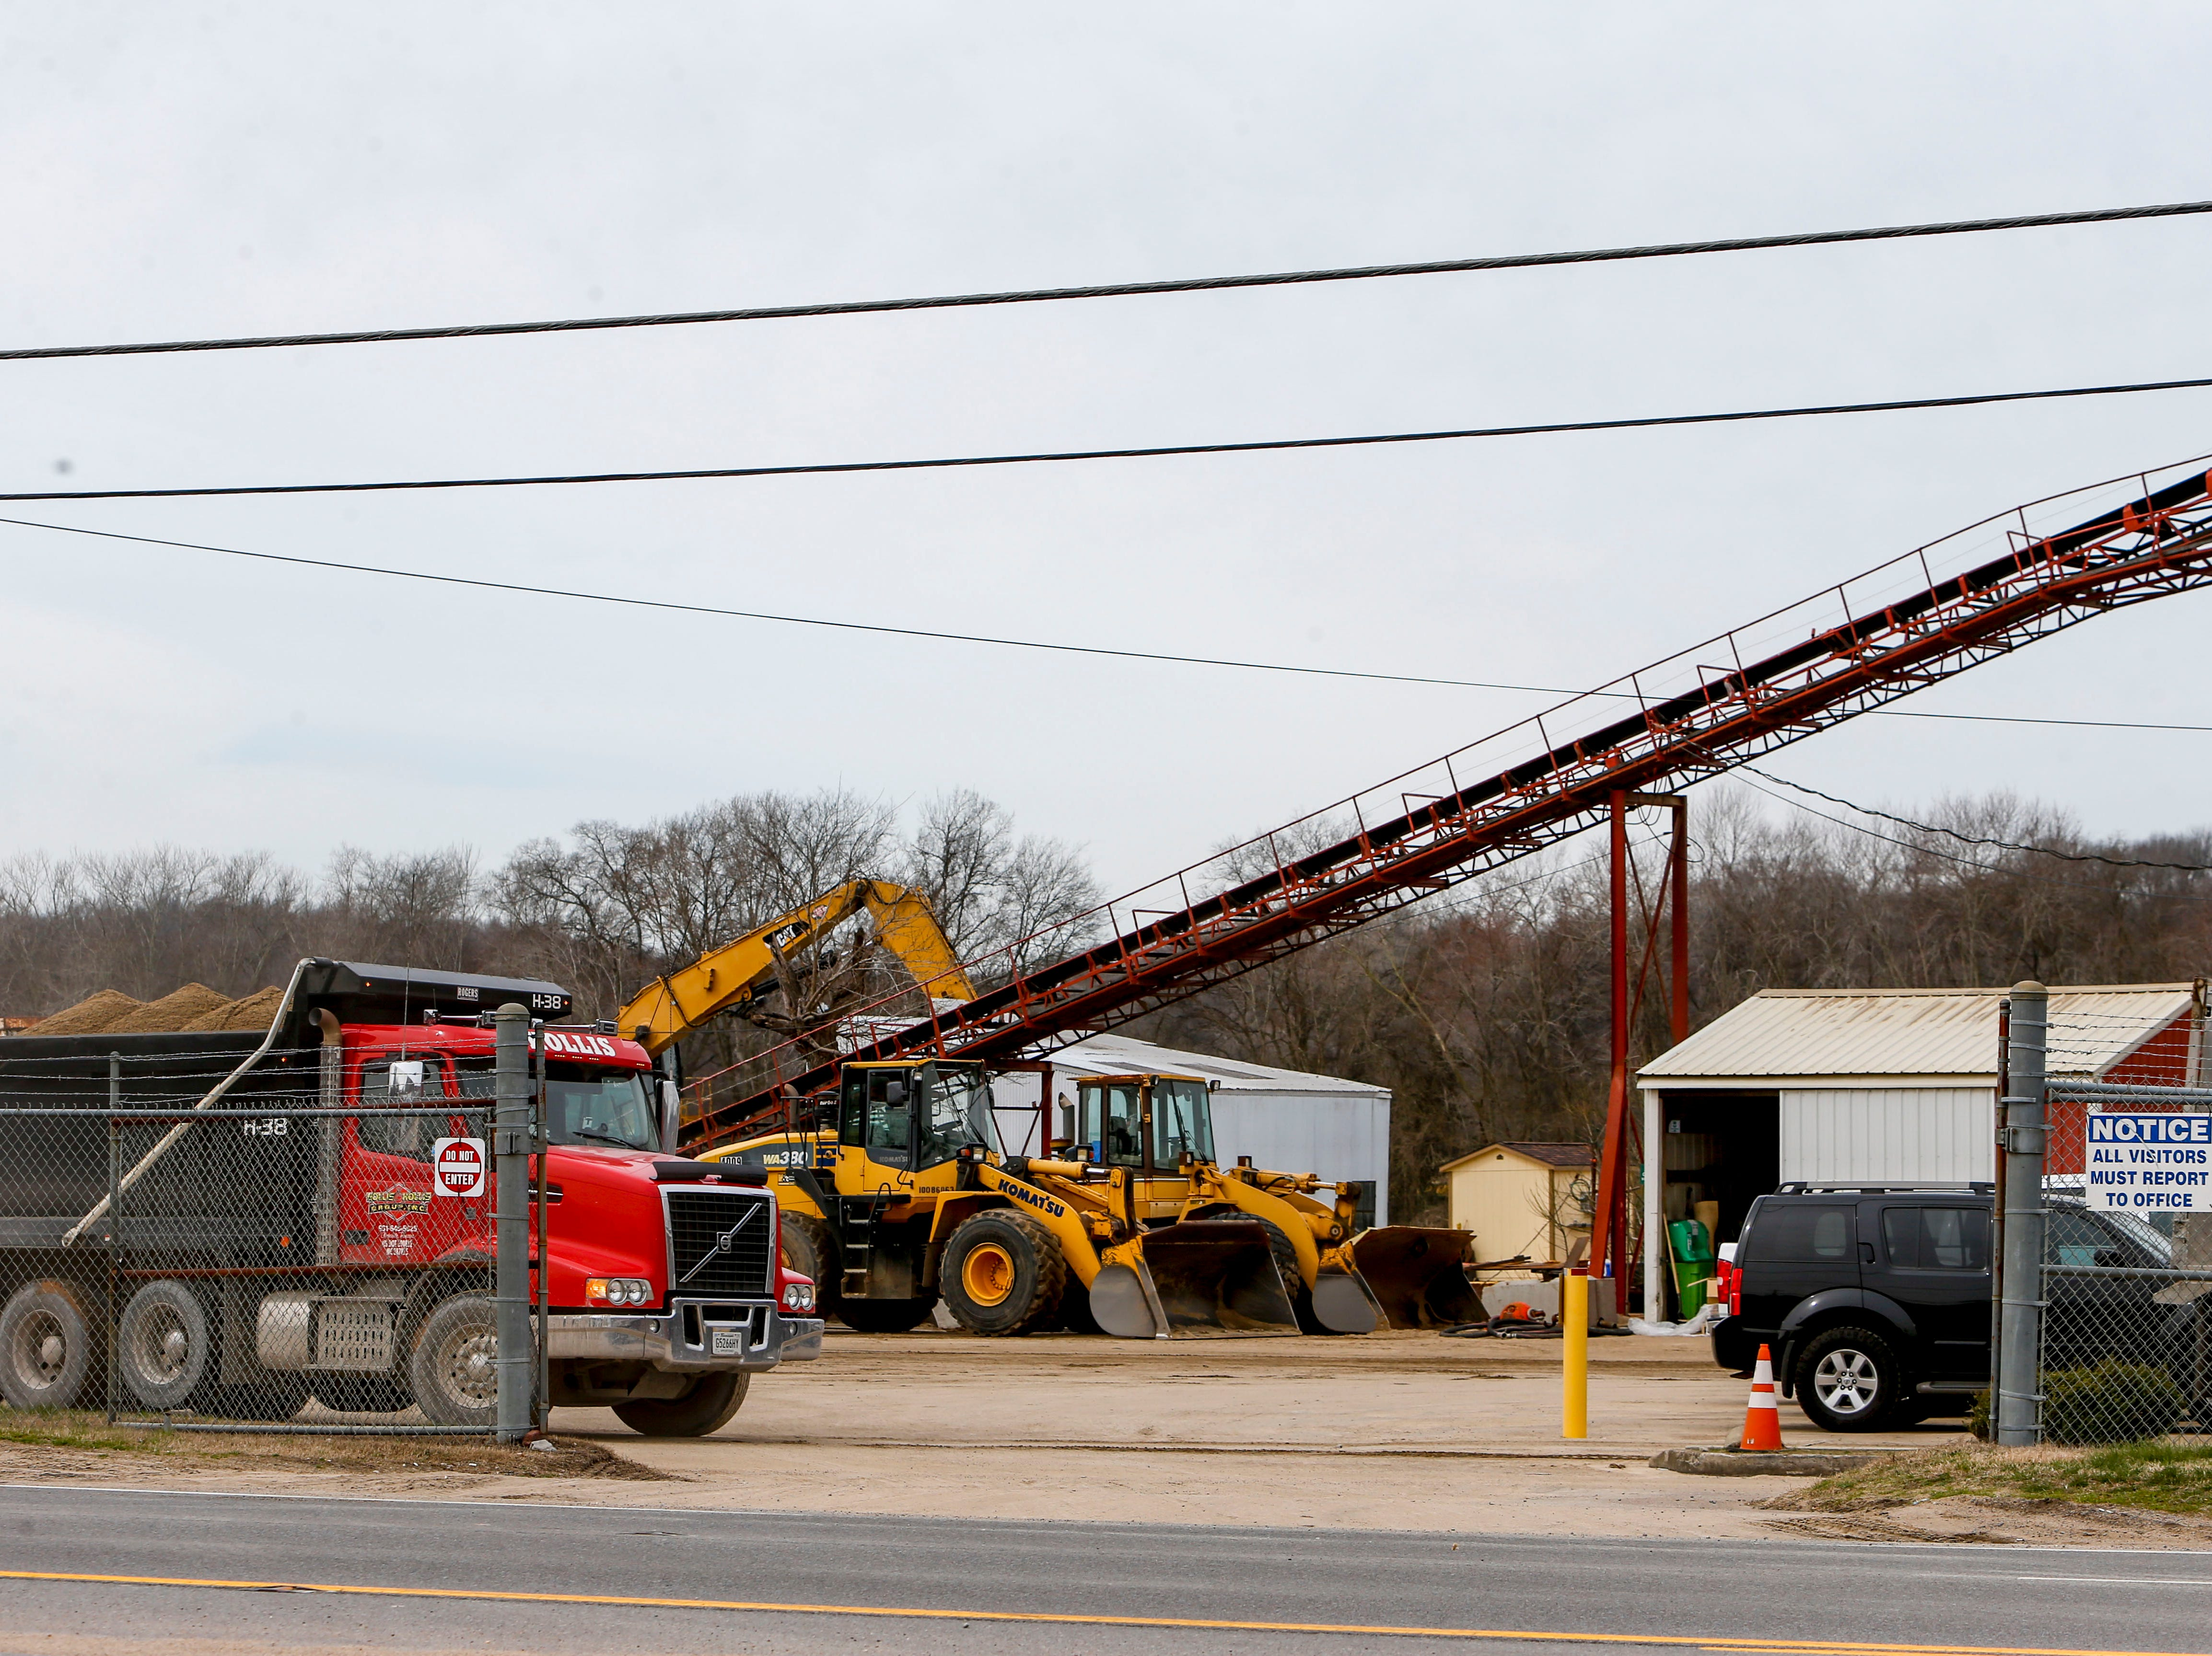 Trucks depart with loads of material while barges cannot travel the river at Pine Bluff Materials in Clarksville, KY., on Tuesday, March 12, 2019.